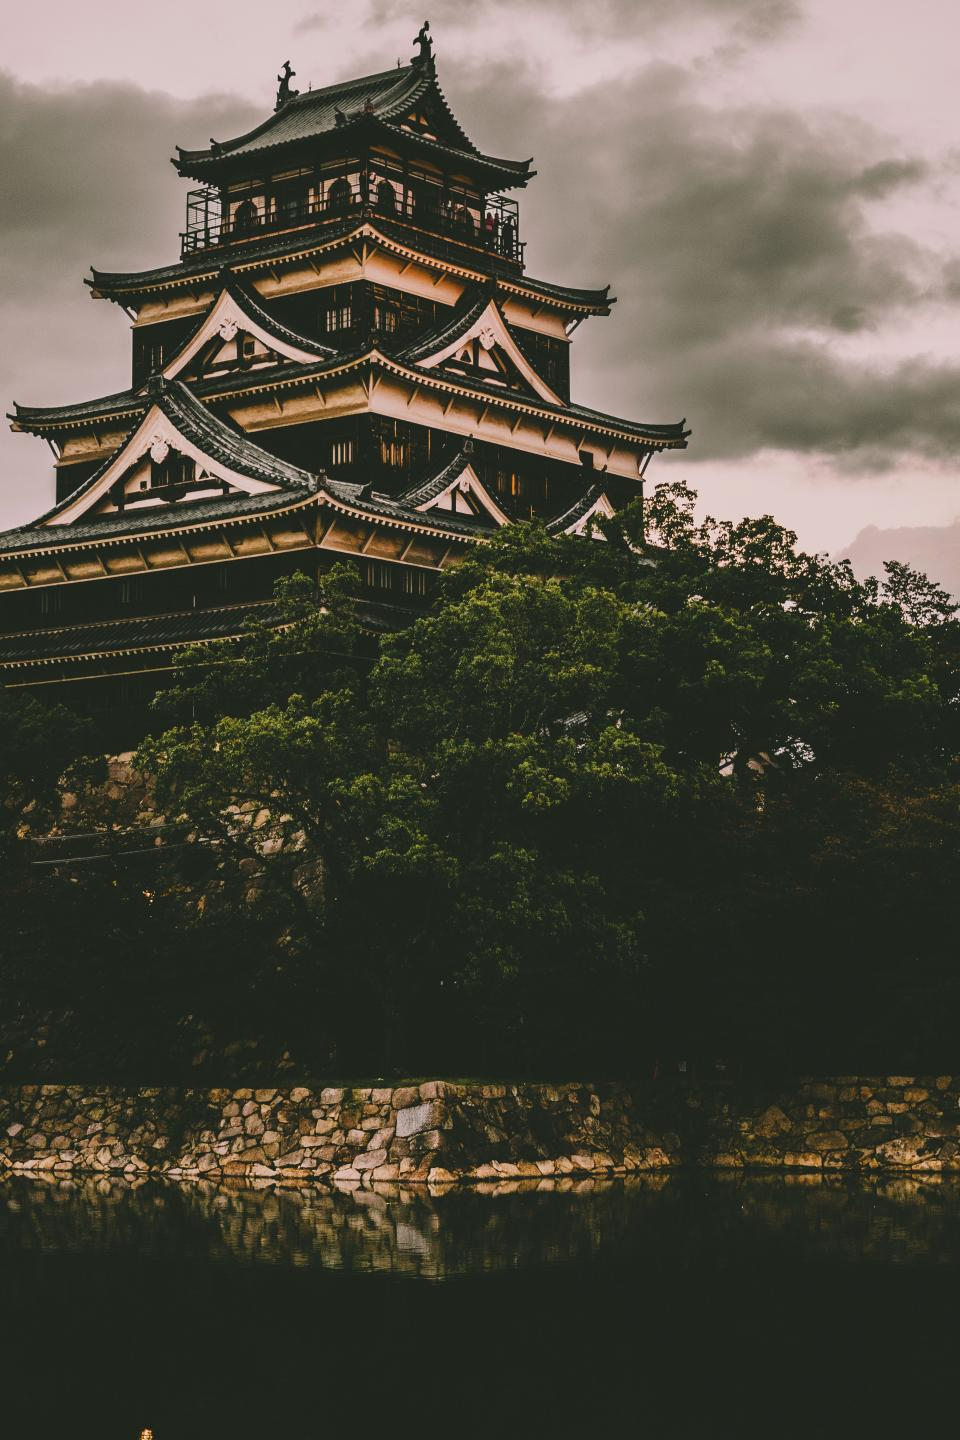 architecture building infrastructure design hiroshima castle japan travel trees plant nature water